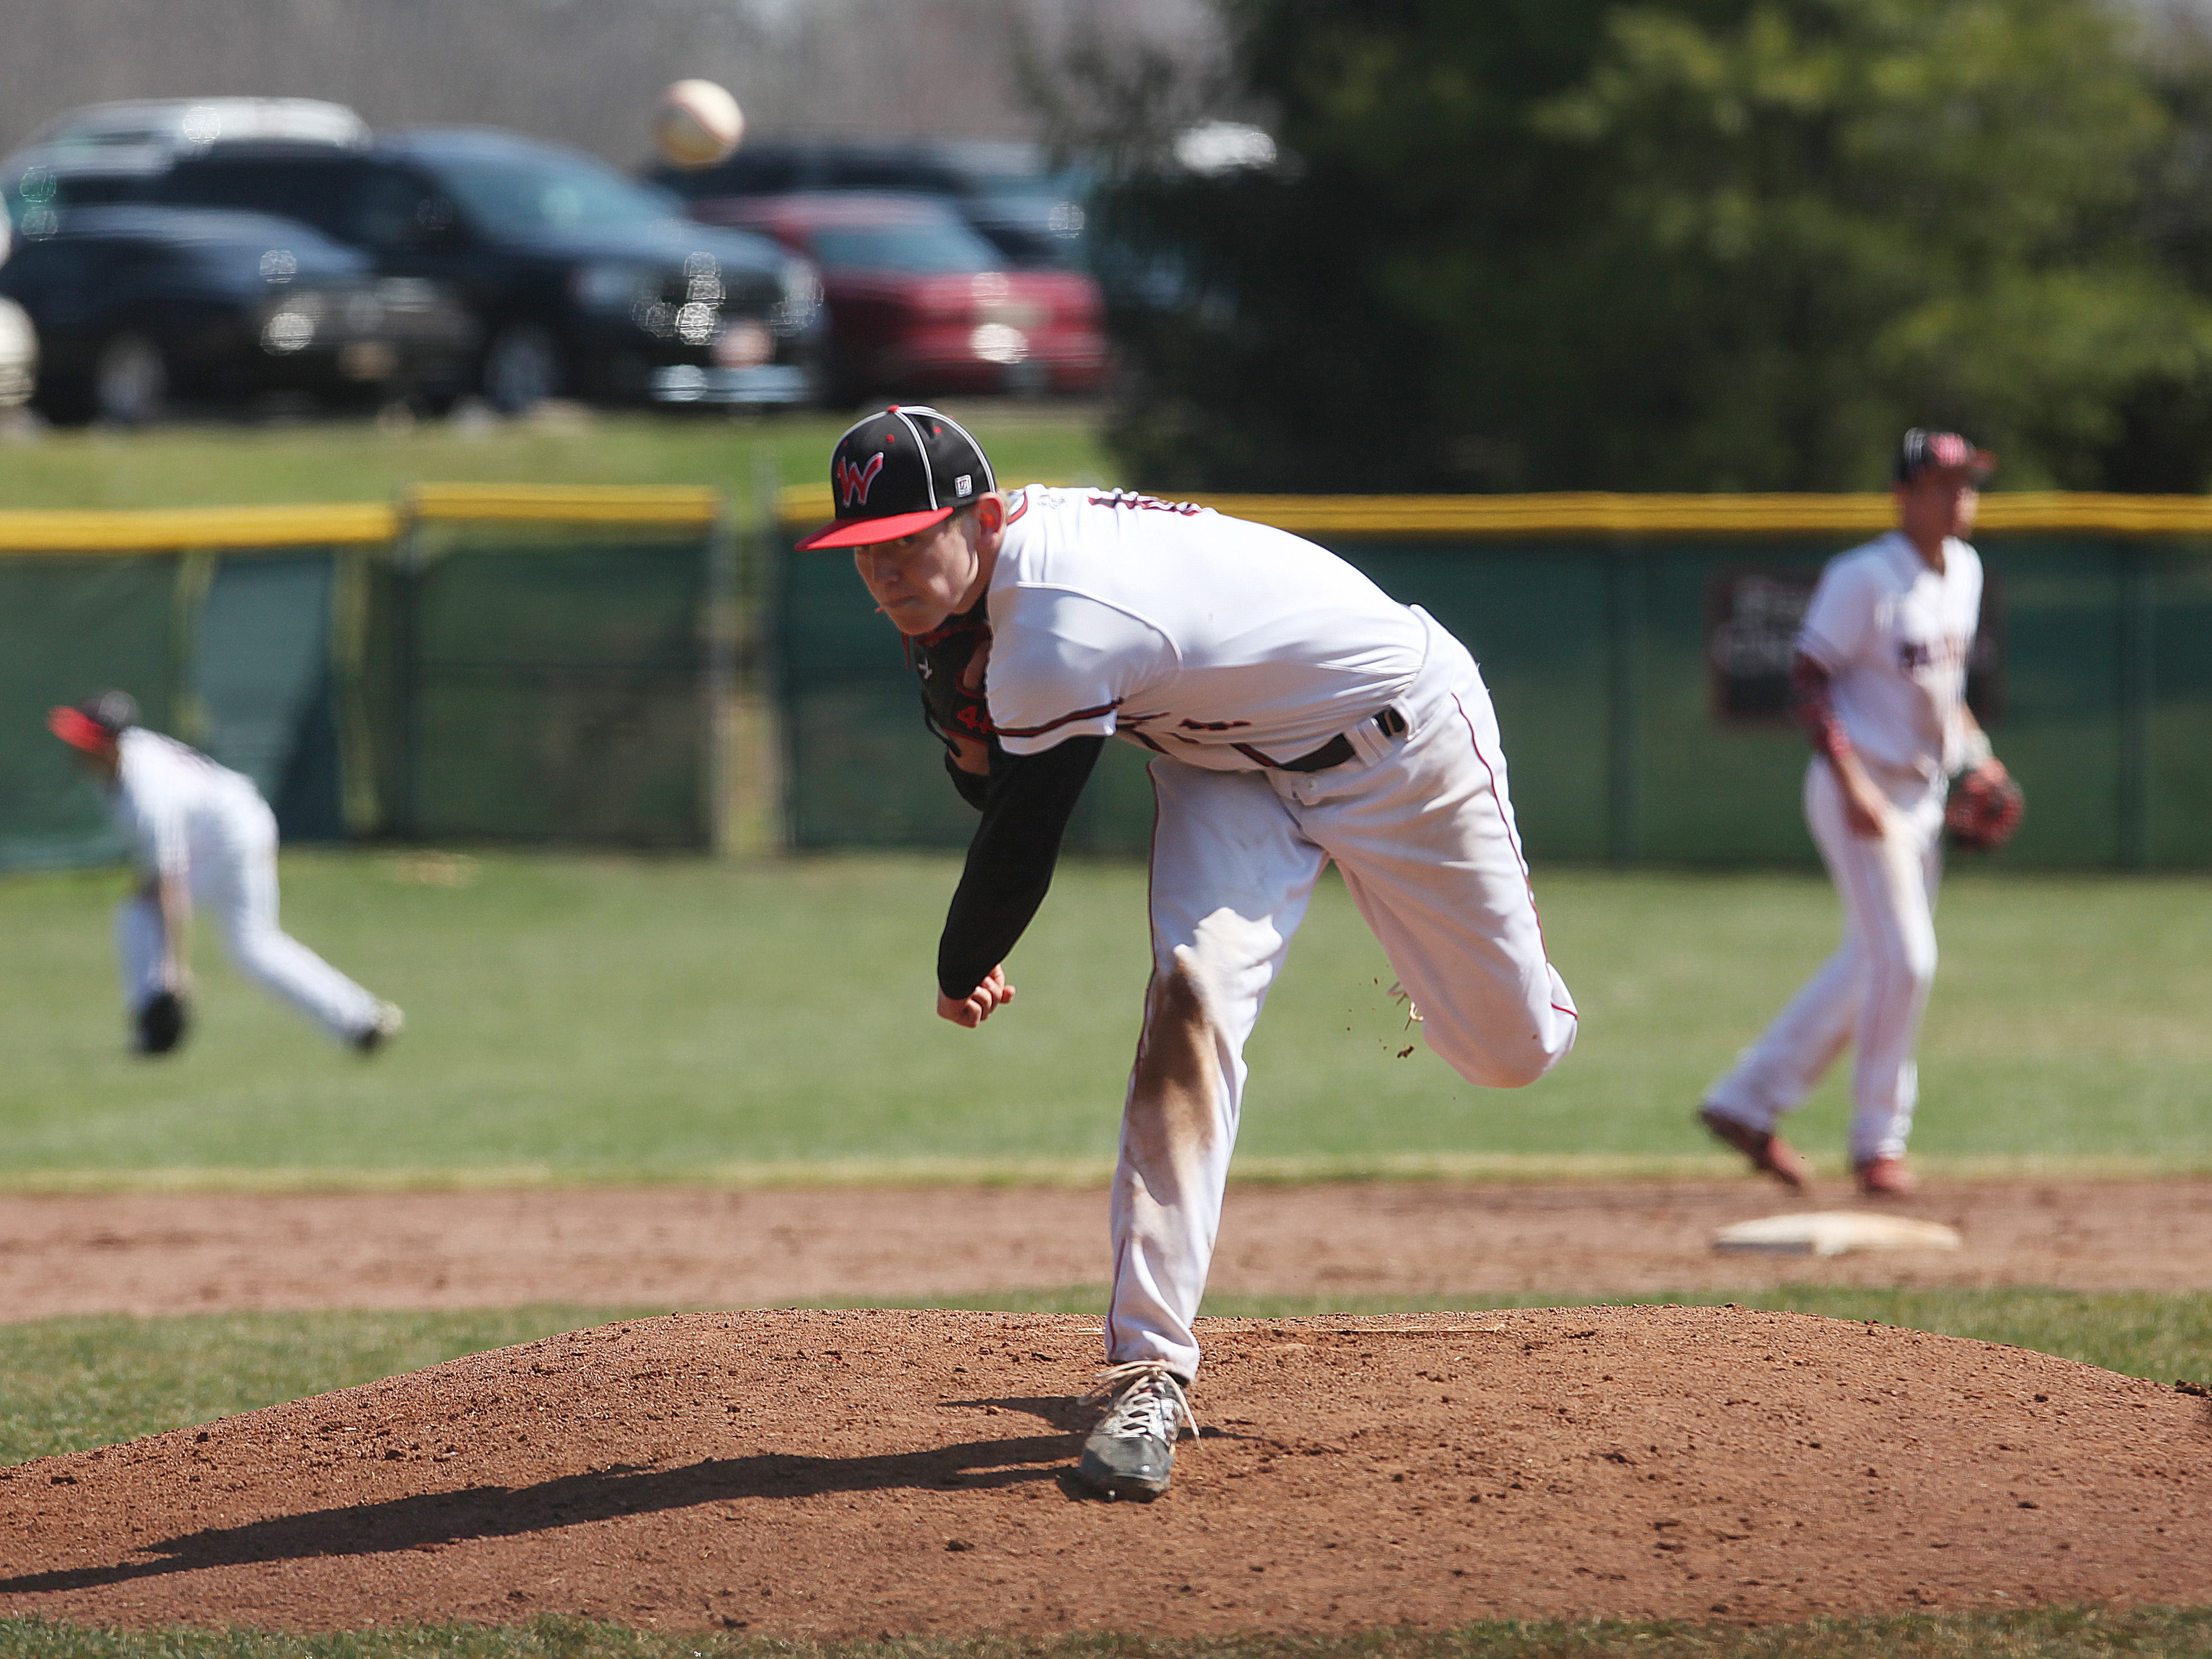 Wapahani pitcher Zack Thompson follows through on a pitch in a 10-0 win against Central Saturday.